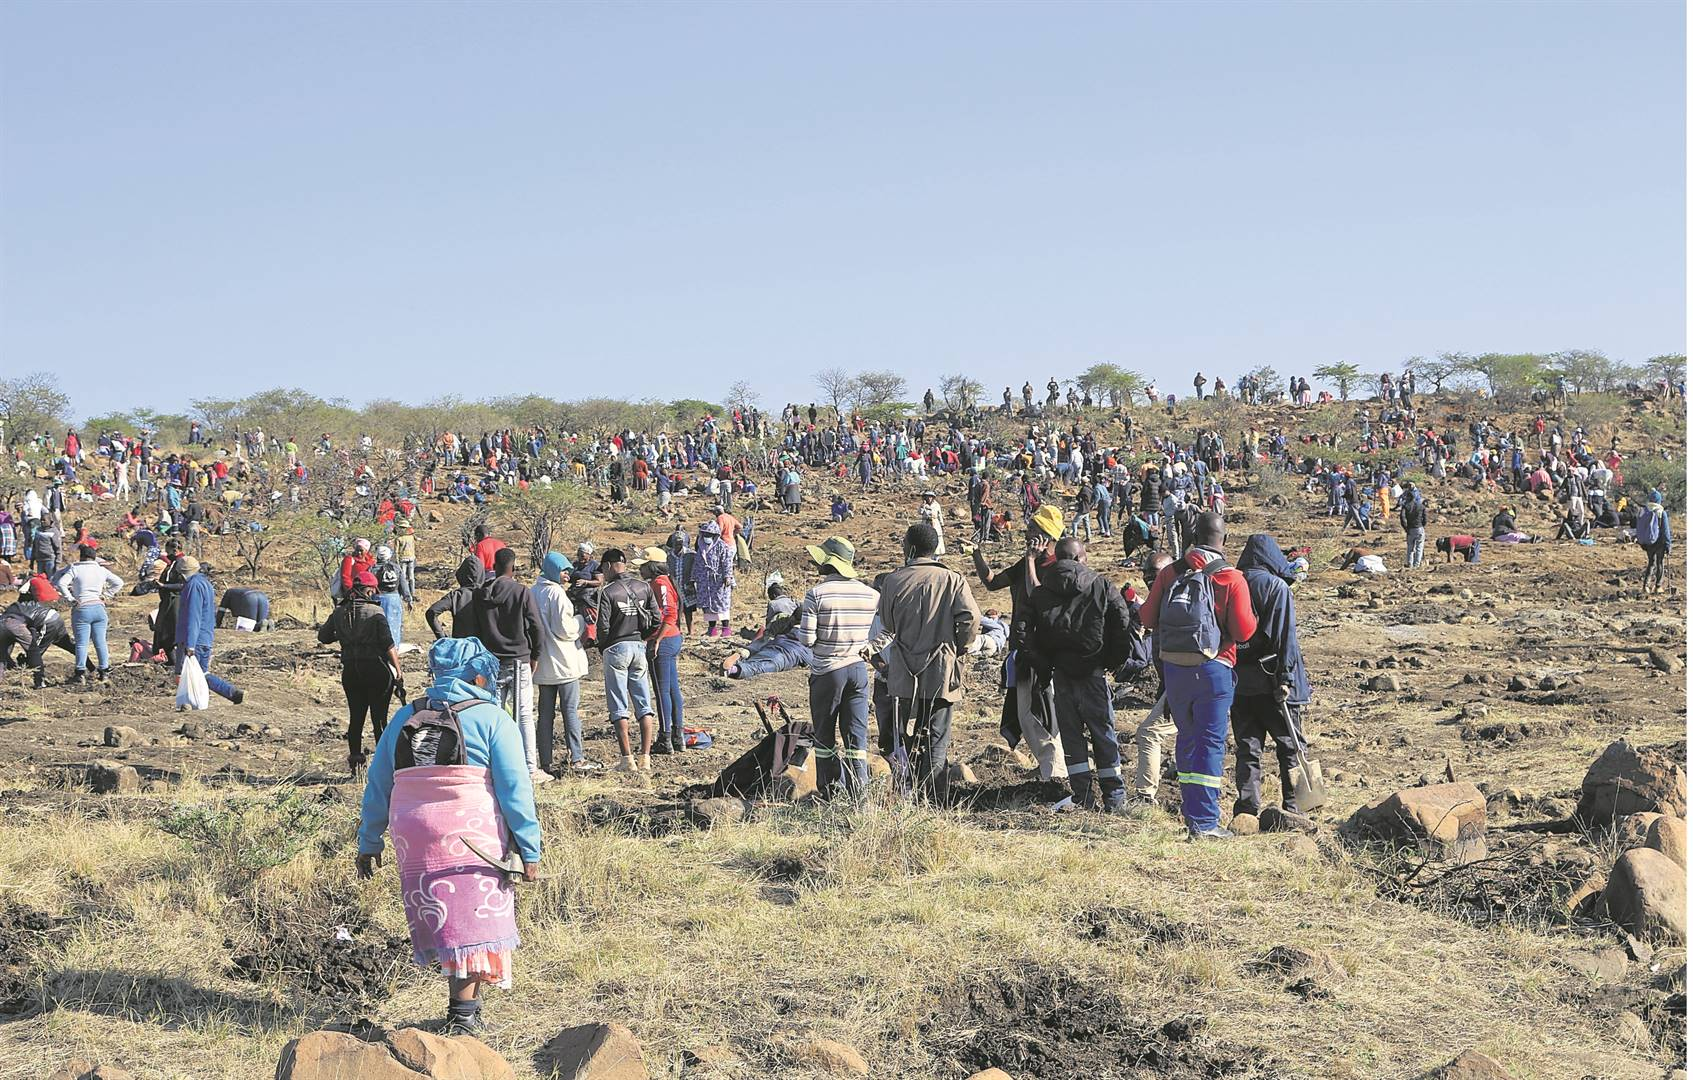 People from as far as Johannesburg and Durban have been digging for diamonds near Ladysmith.